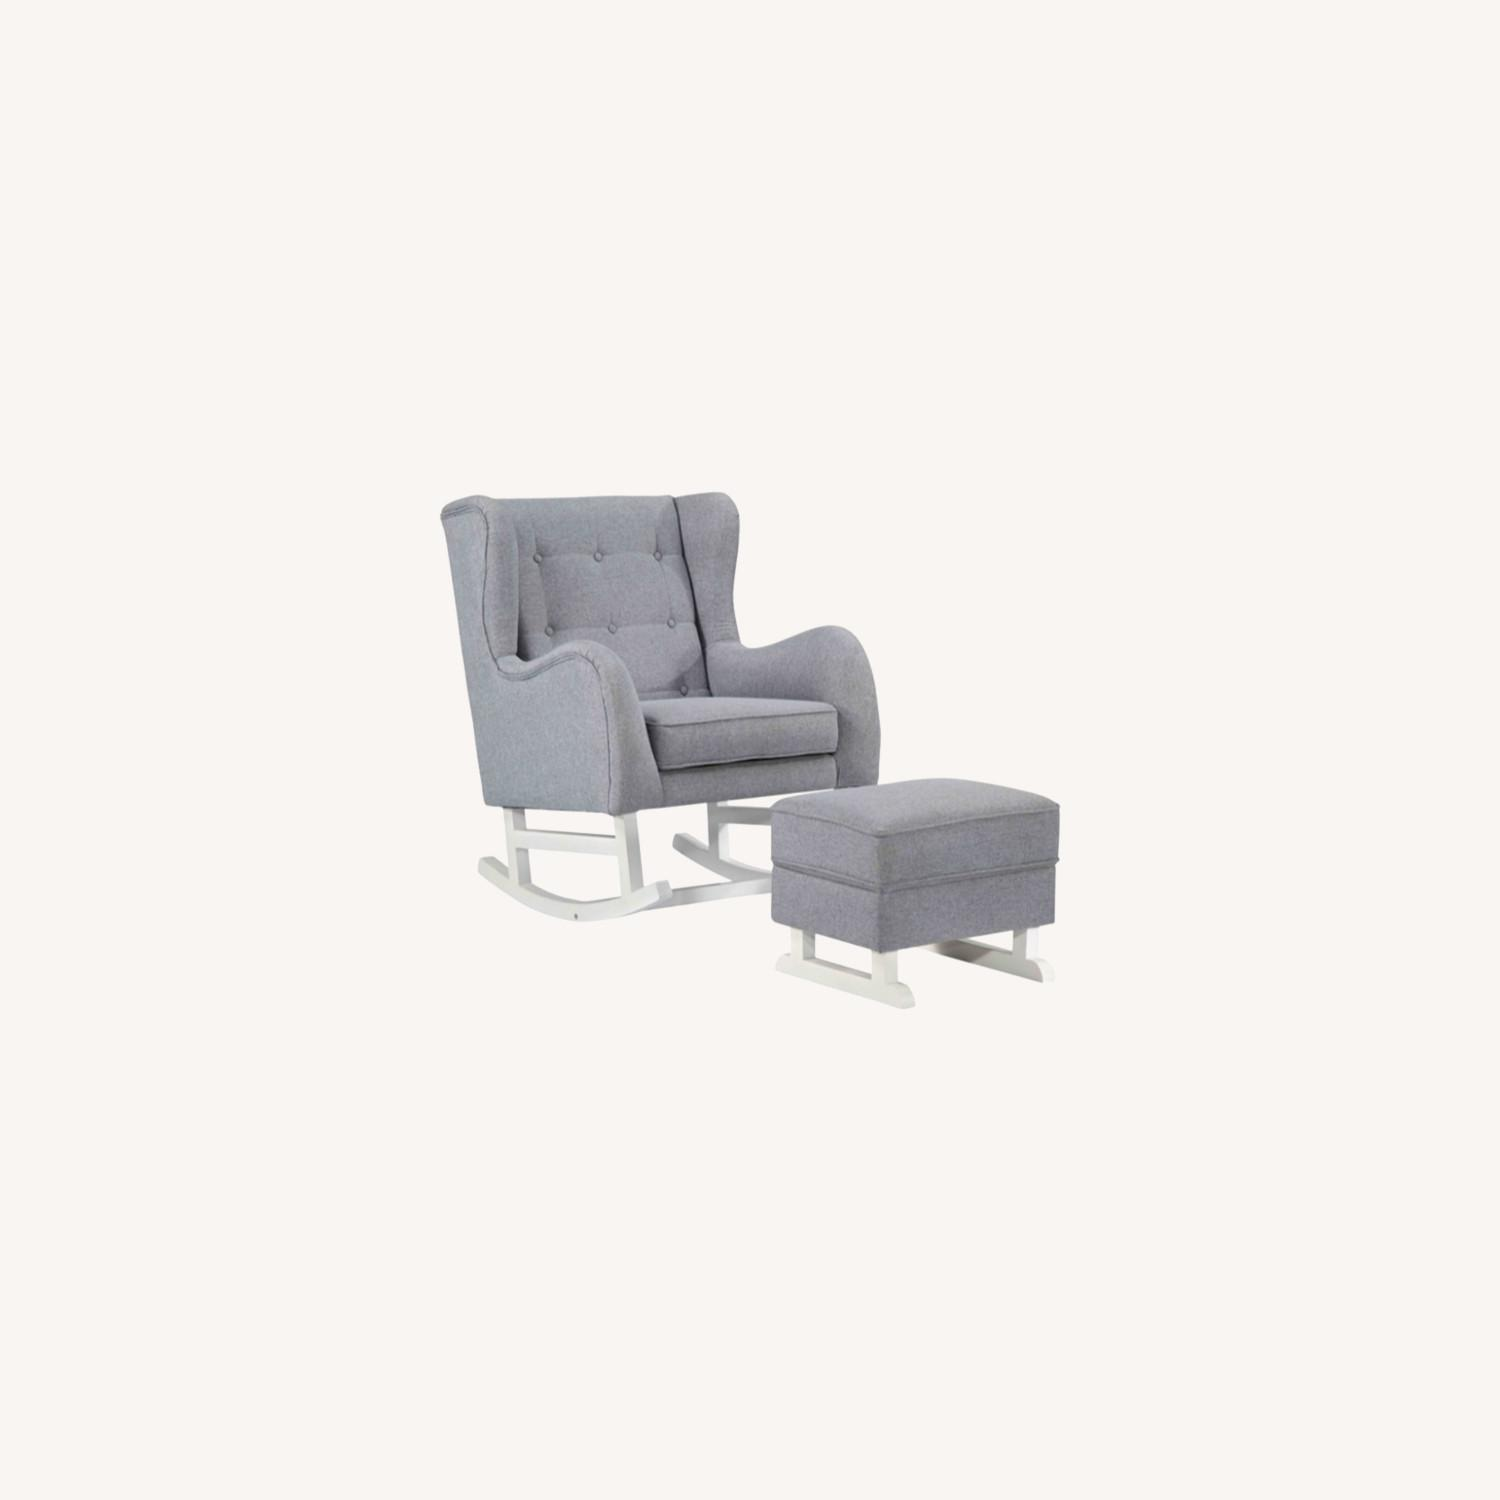 Baby Lounge Chair & Ottoman In Gray Fabric - image-8